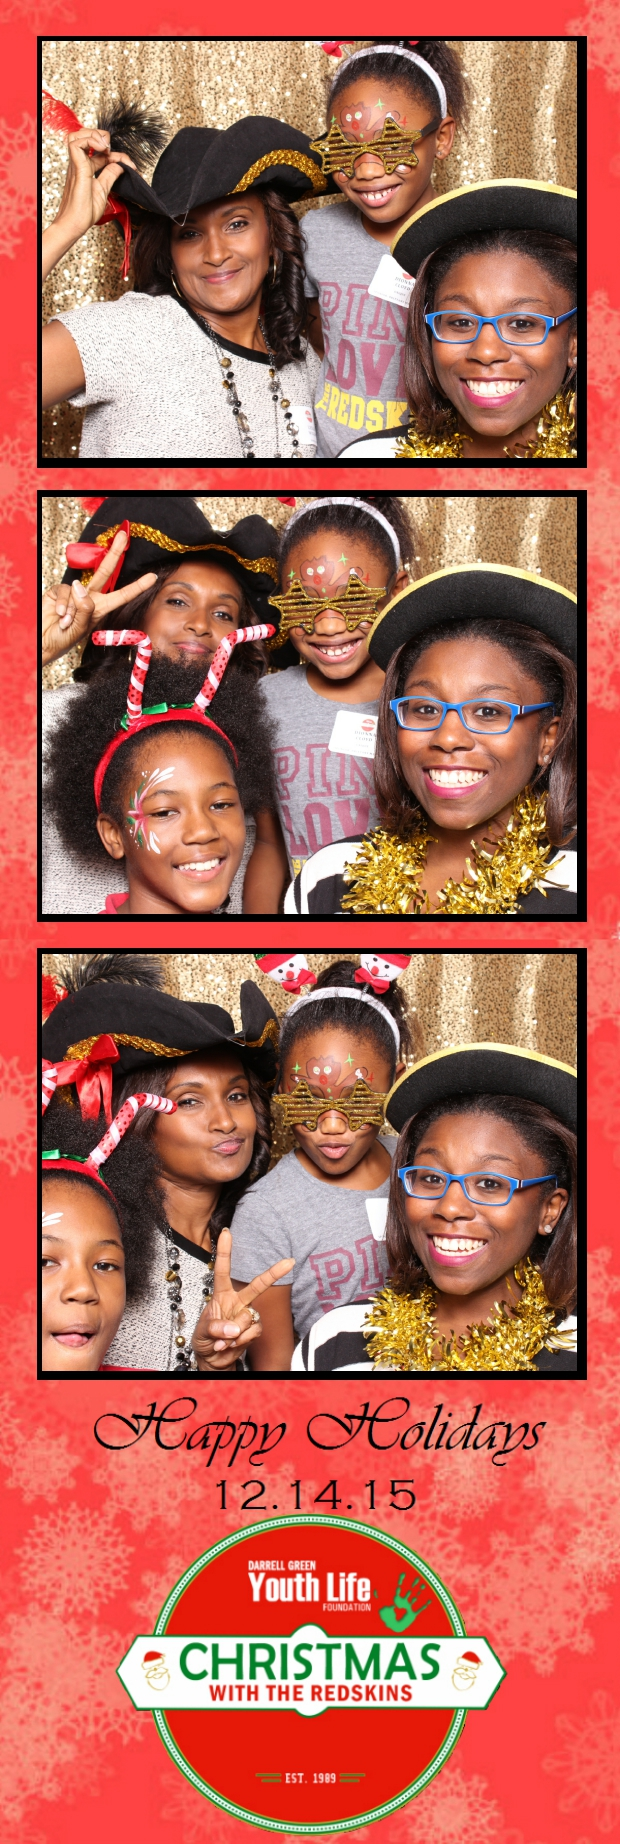 Guest House Events Photo Booth DGYLF Strips (54).jpg